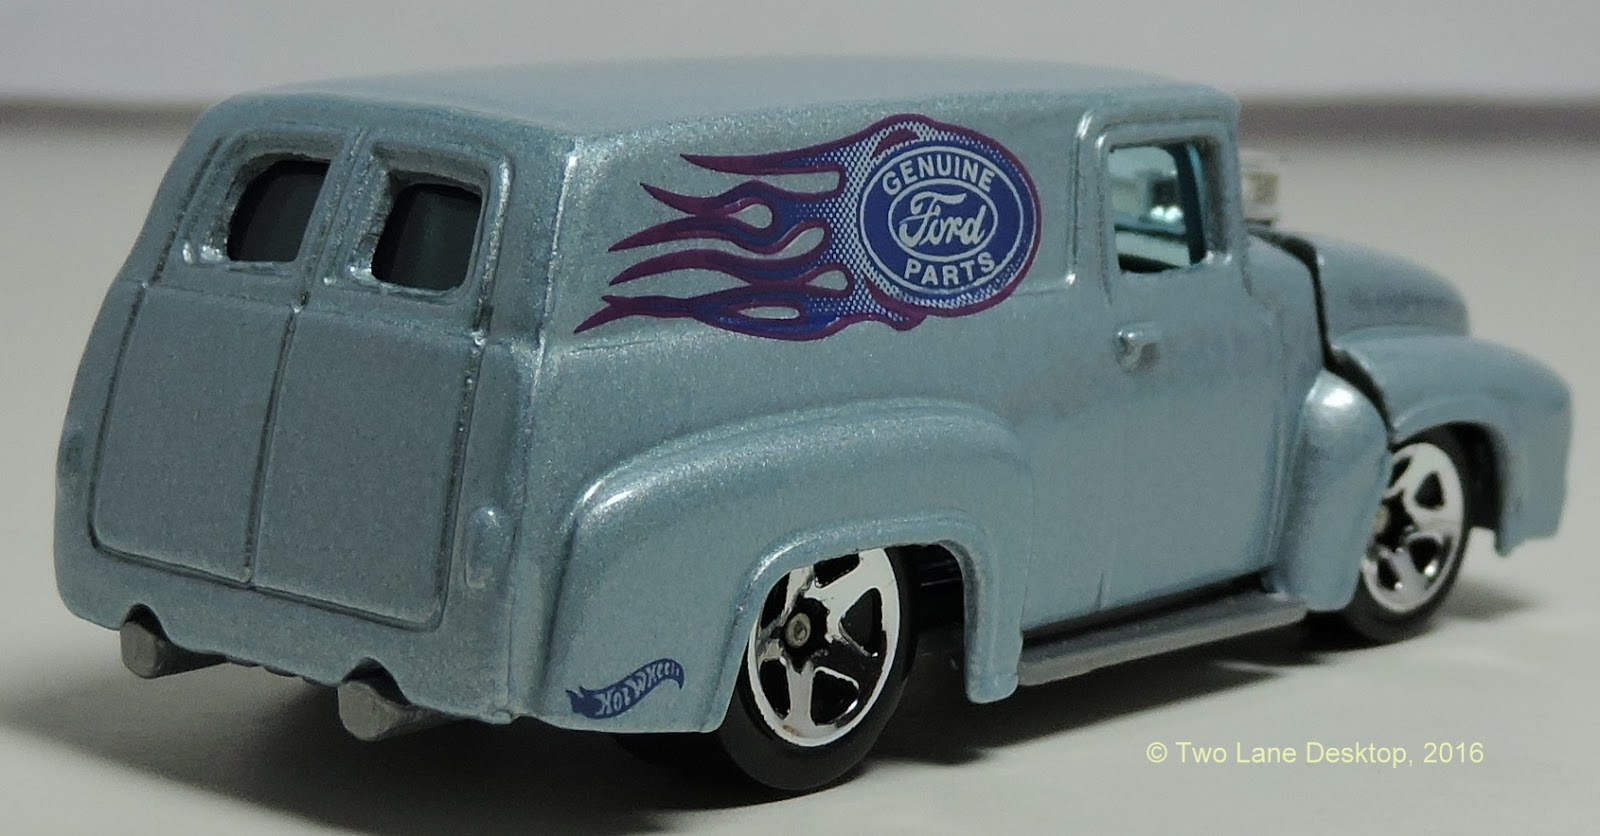 Hot Wheels 1956 Ford Pickup Panel And School Busted 1948 Truck 4x4 One Of Those That I Recently Found Is The Line Trucks In Form A Bus